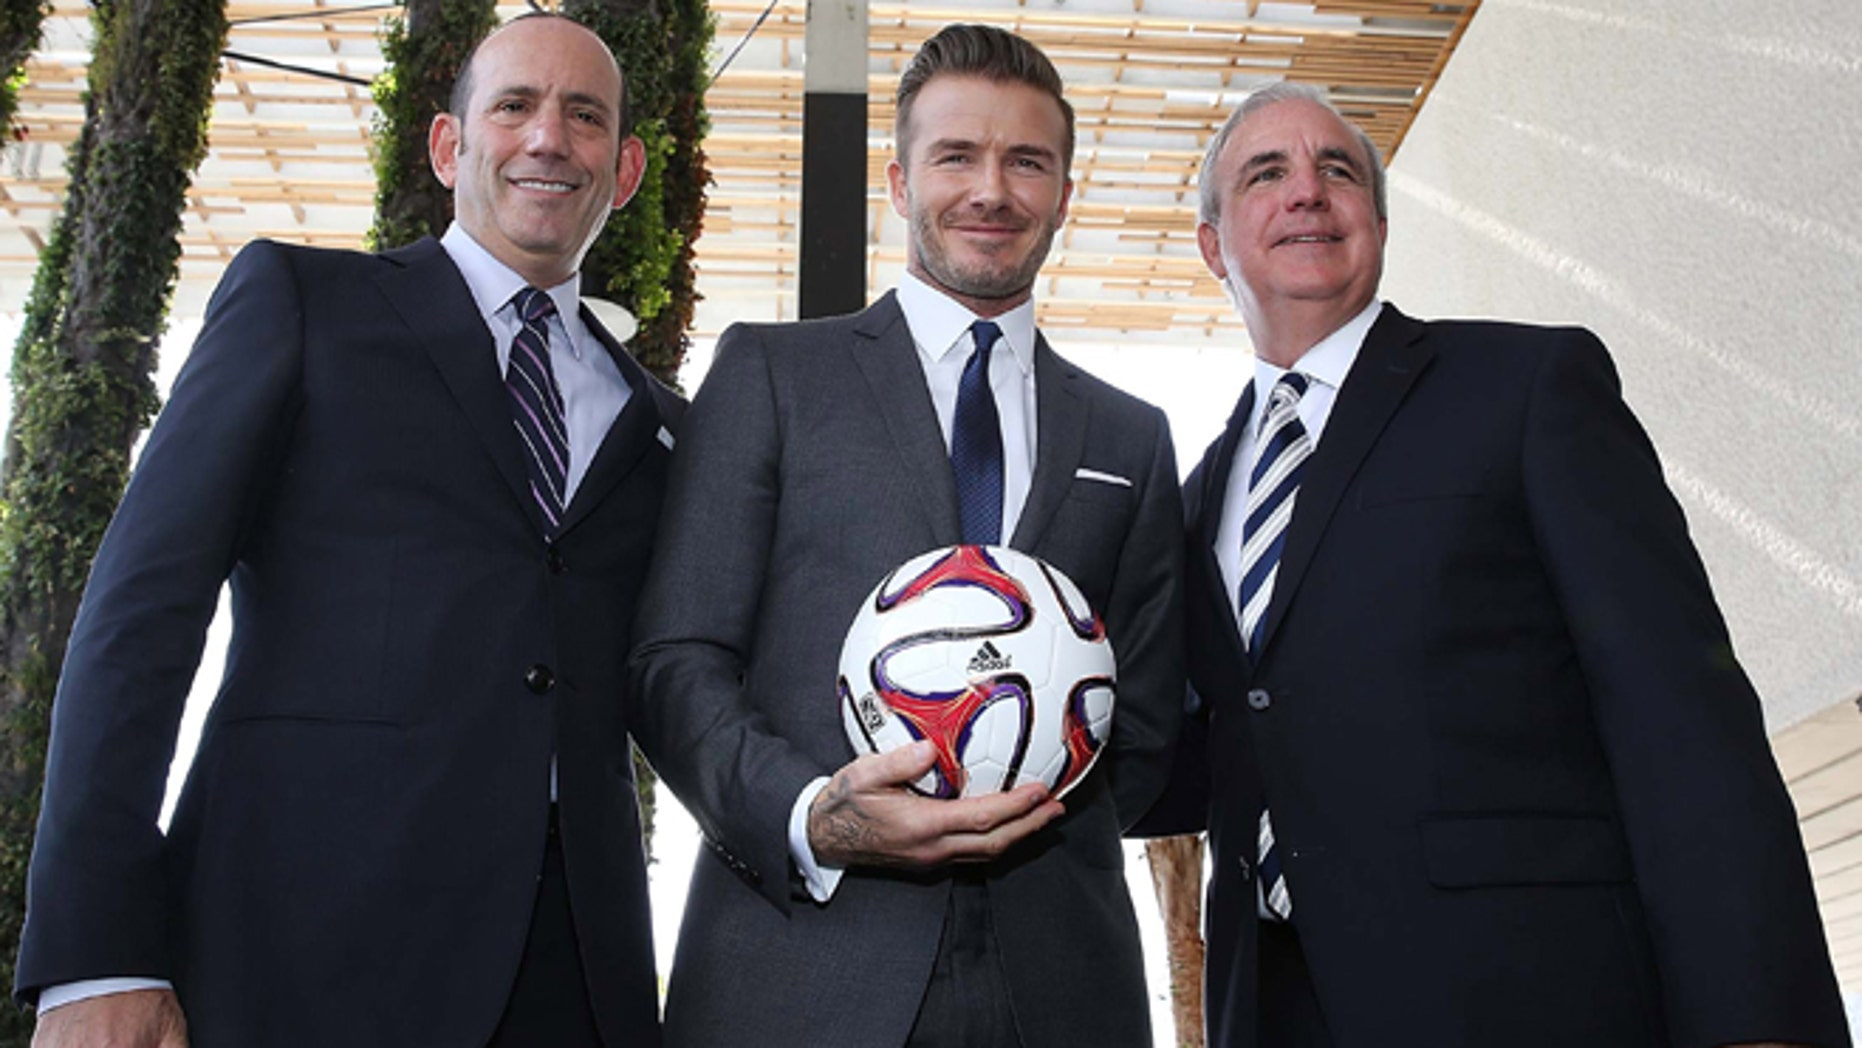 MLS Commissioner Don Garber, David Beckham and Miami-Dade County Mayor Carlos Gimenez at a press conference announcing the new pro soccer franchise on February 5, 2014 in Miami, Florida. (Photo by Aaron Davidson/Getty Images)